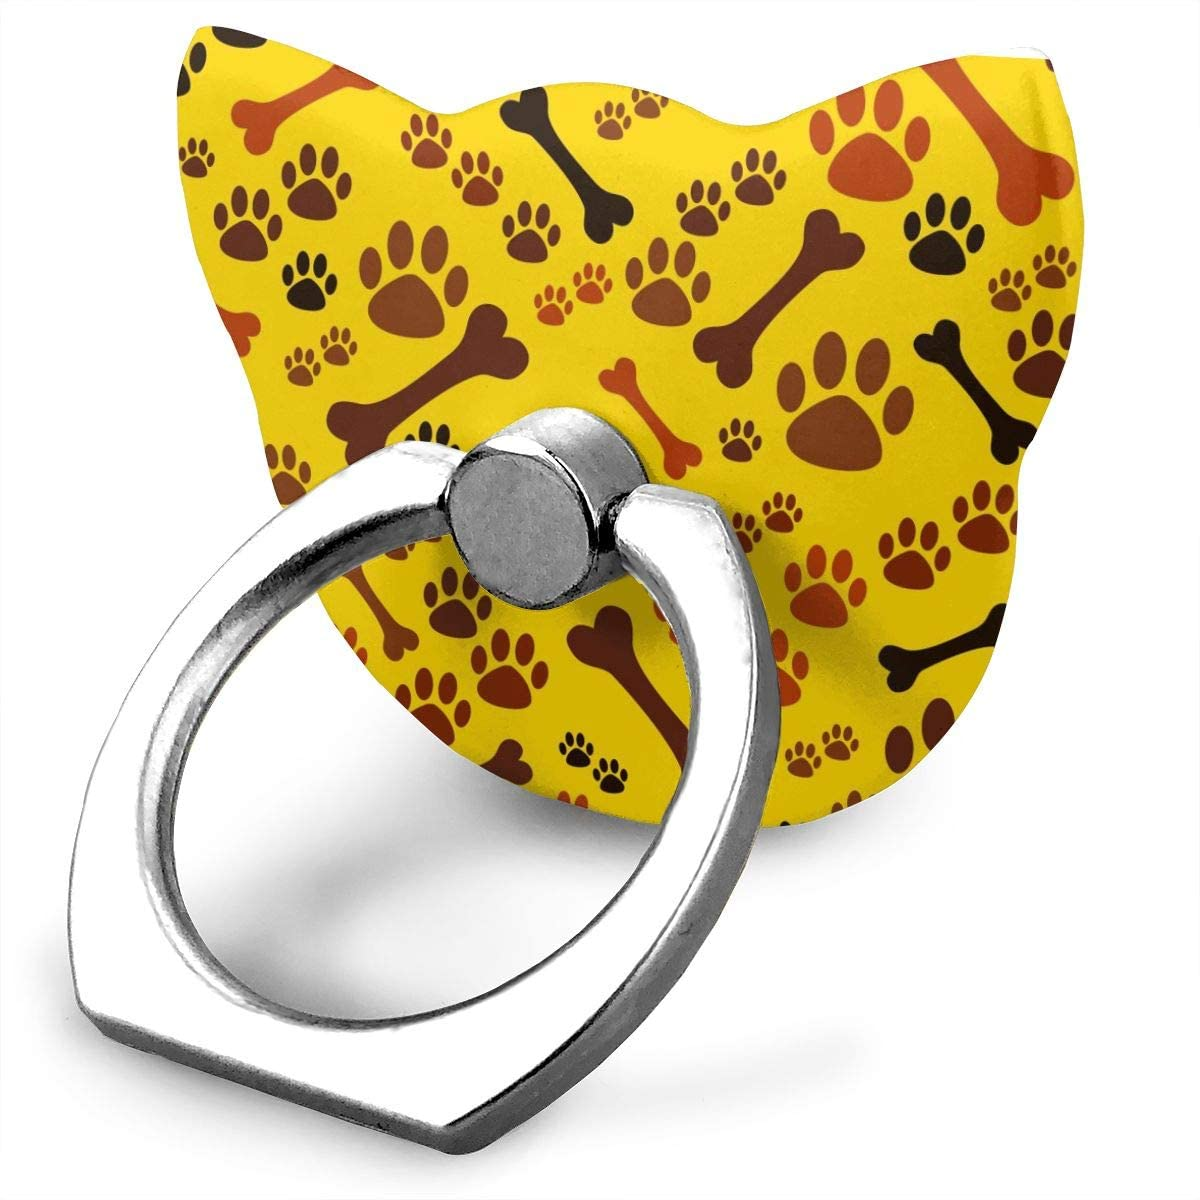 Universal Phone Ring Holder Cute Puppy Dog Paw and Bone Animal Yellow Red Adjustable 360°Rotation Cat Shape Finger Grip Loop Cell Phone Stand for Phone X/6/6s/7/8/8/10/11 Plus Android Smartphone